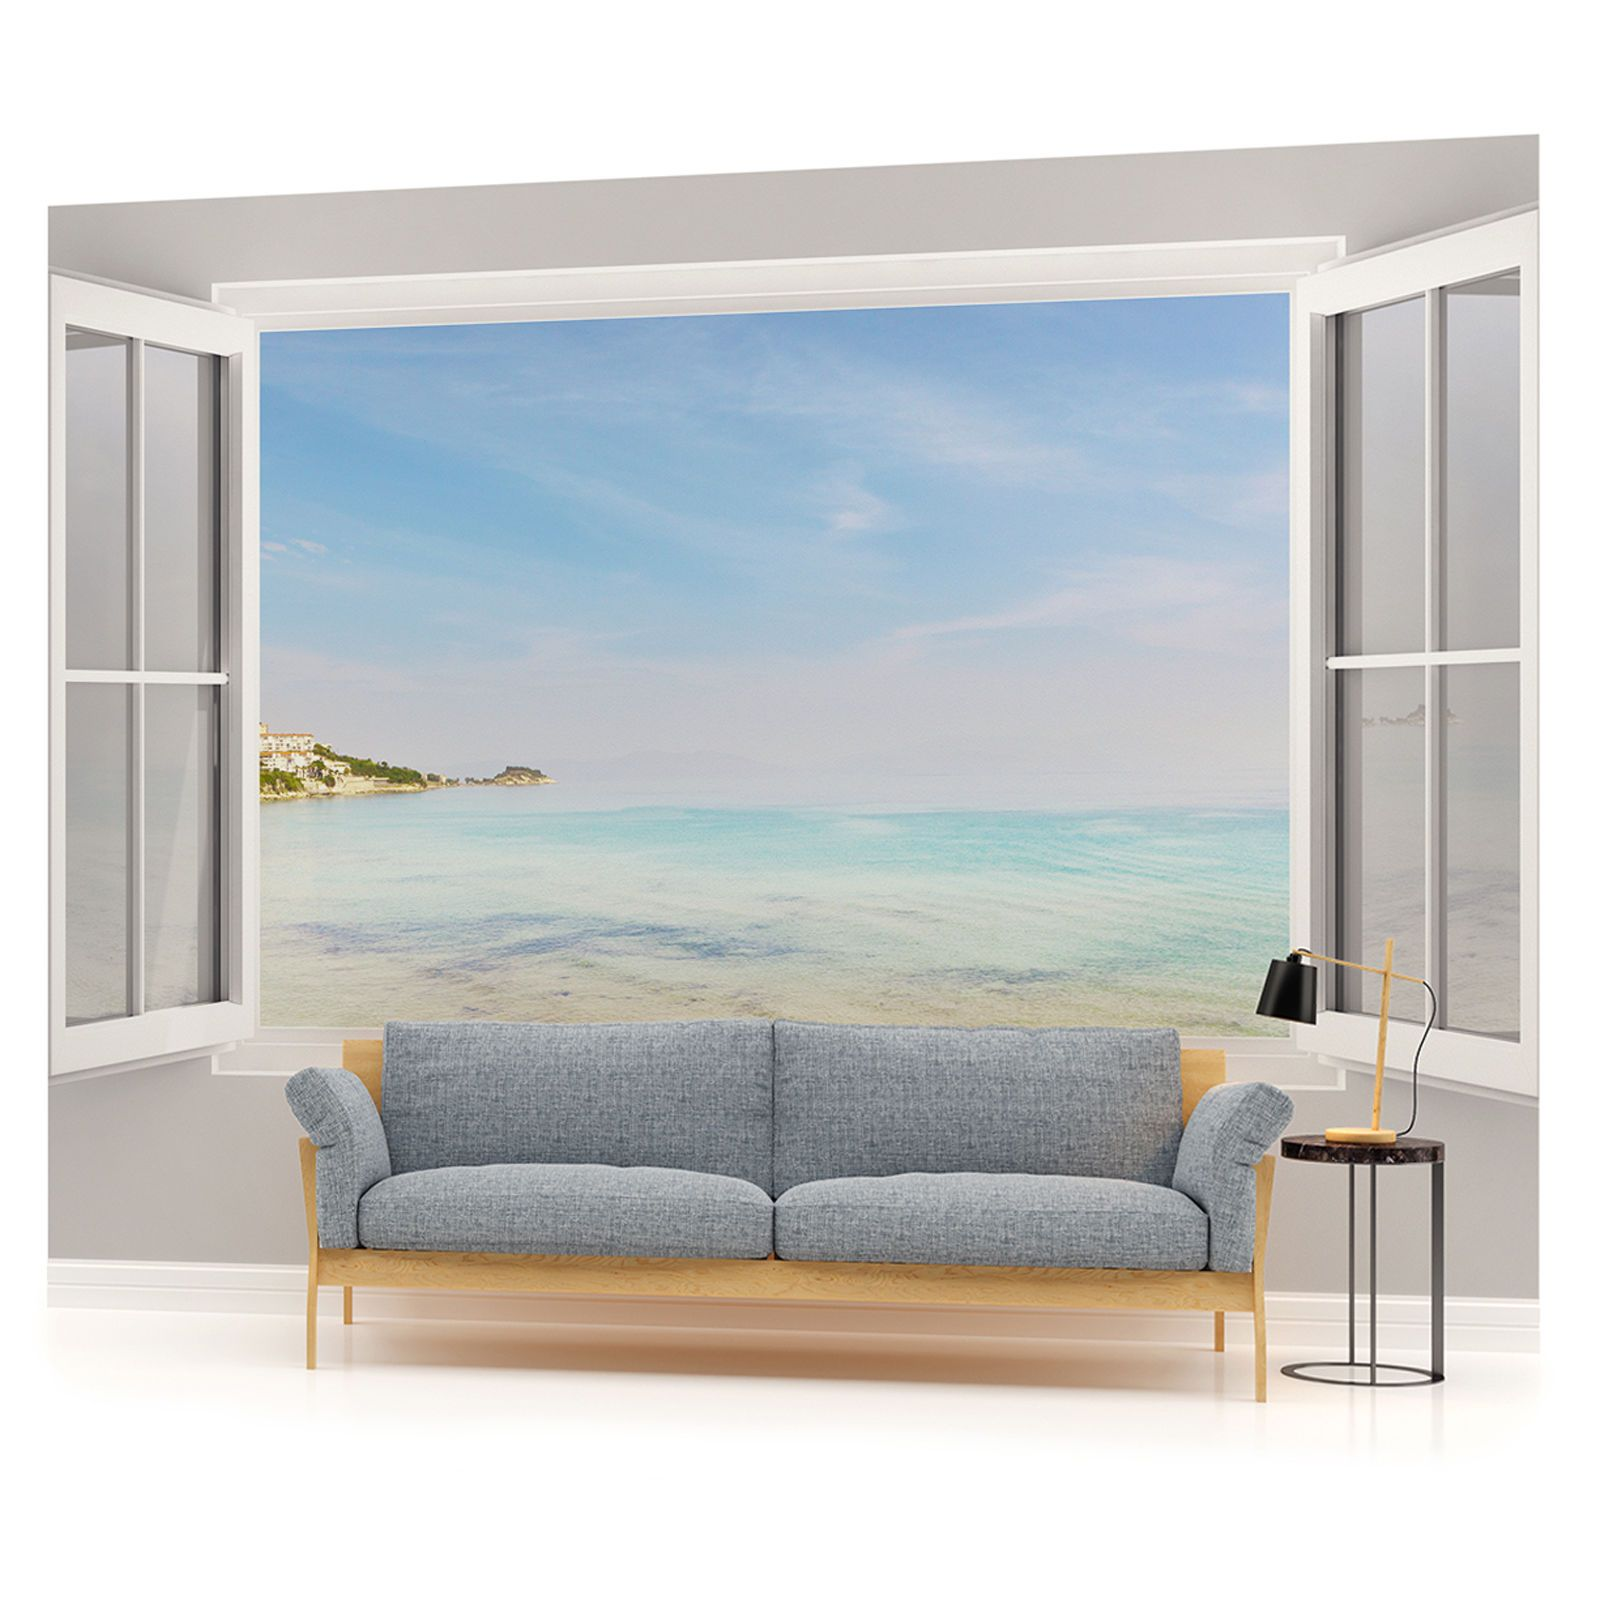 fototapete wandbild fototapeten bild tapete meer strand landschaft w1105 fototapete. Black Bedroom Furniture Sets. Home Design Ideas